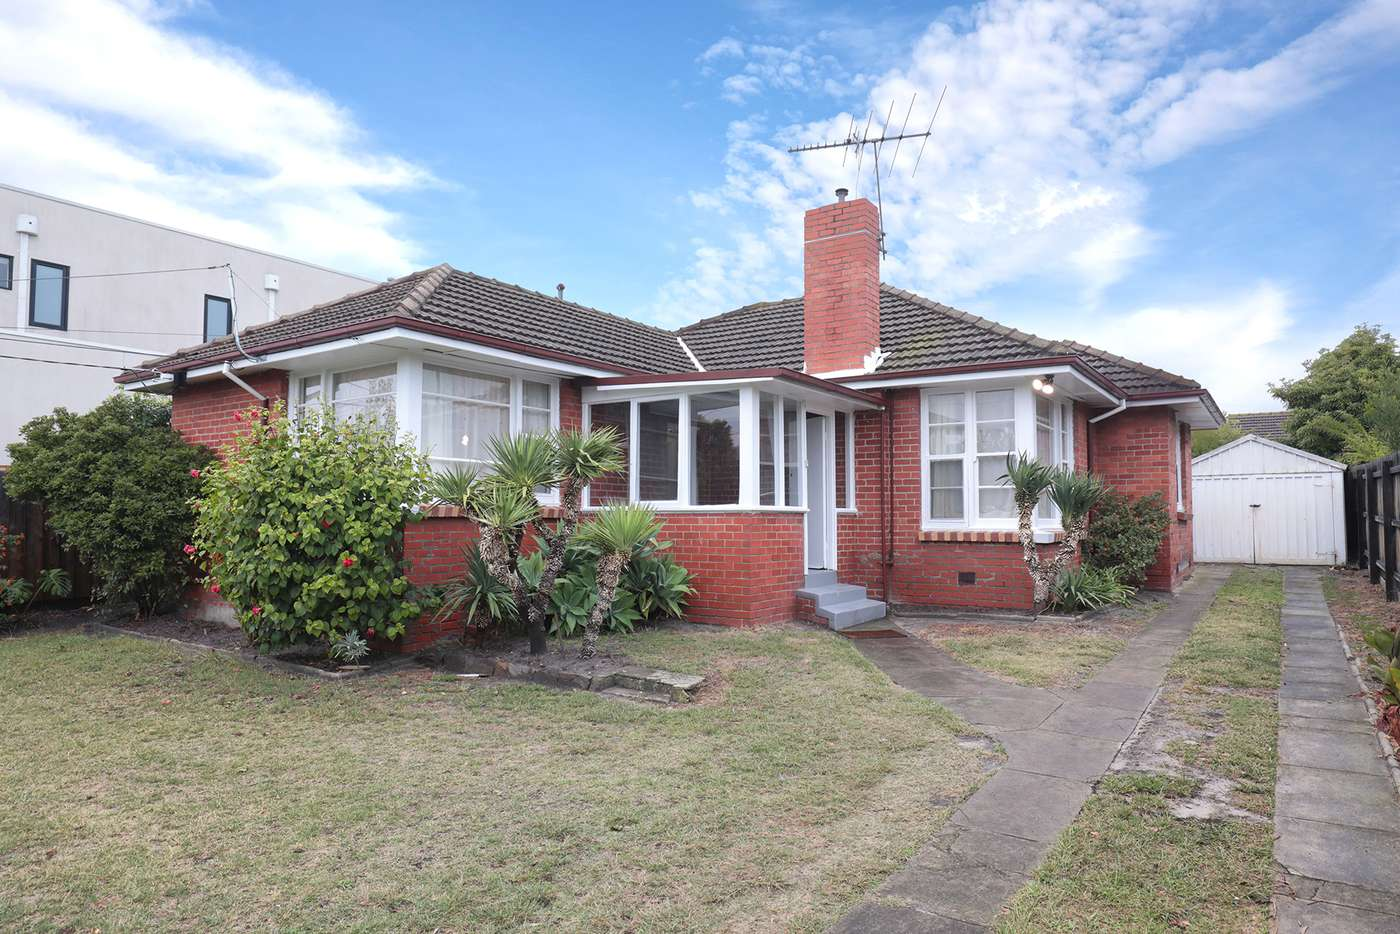 Main view of Homely house listing, 36 Kinlock Avenue, Murrumbeena VIC 3163